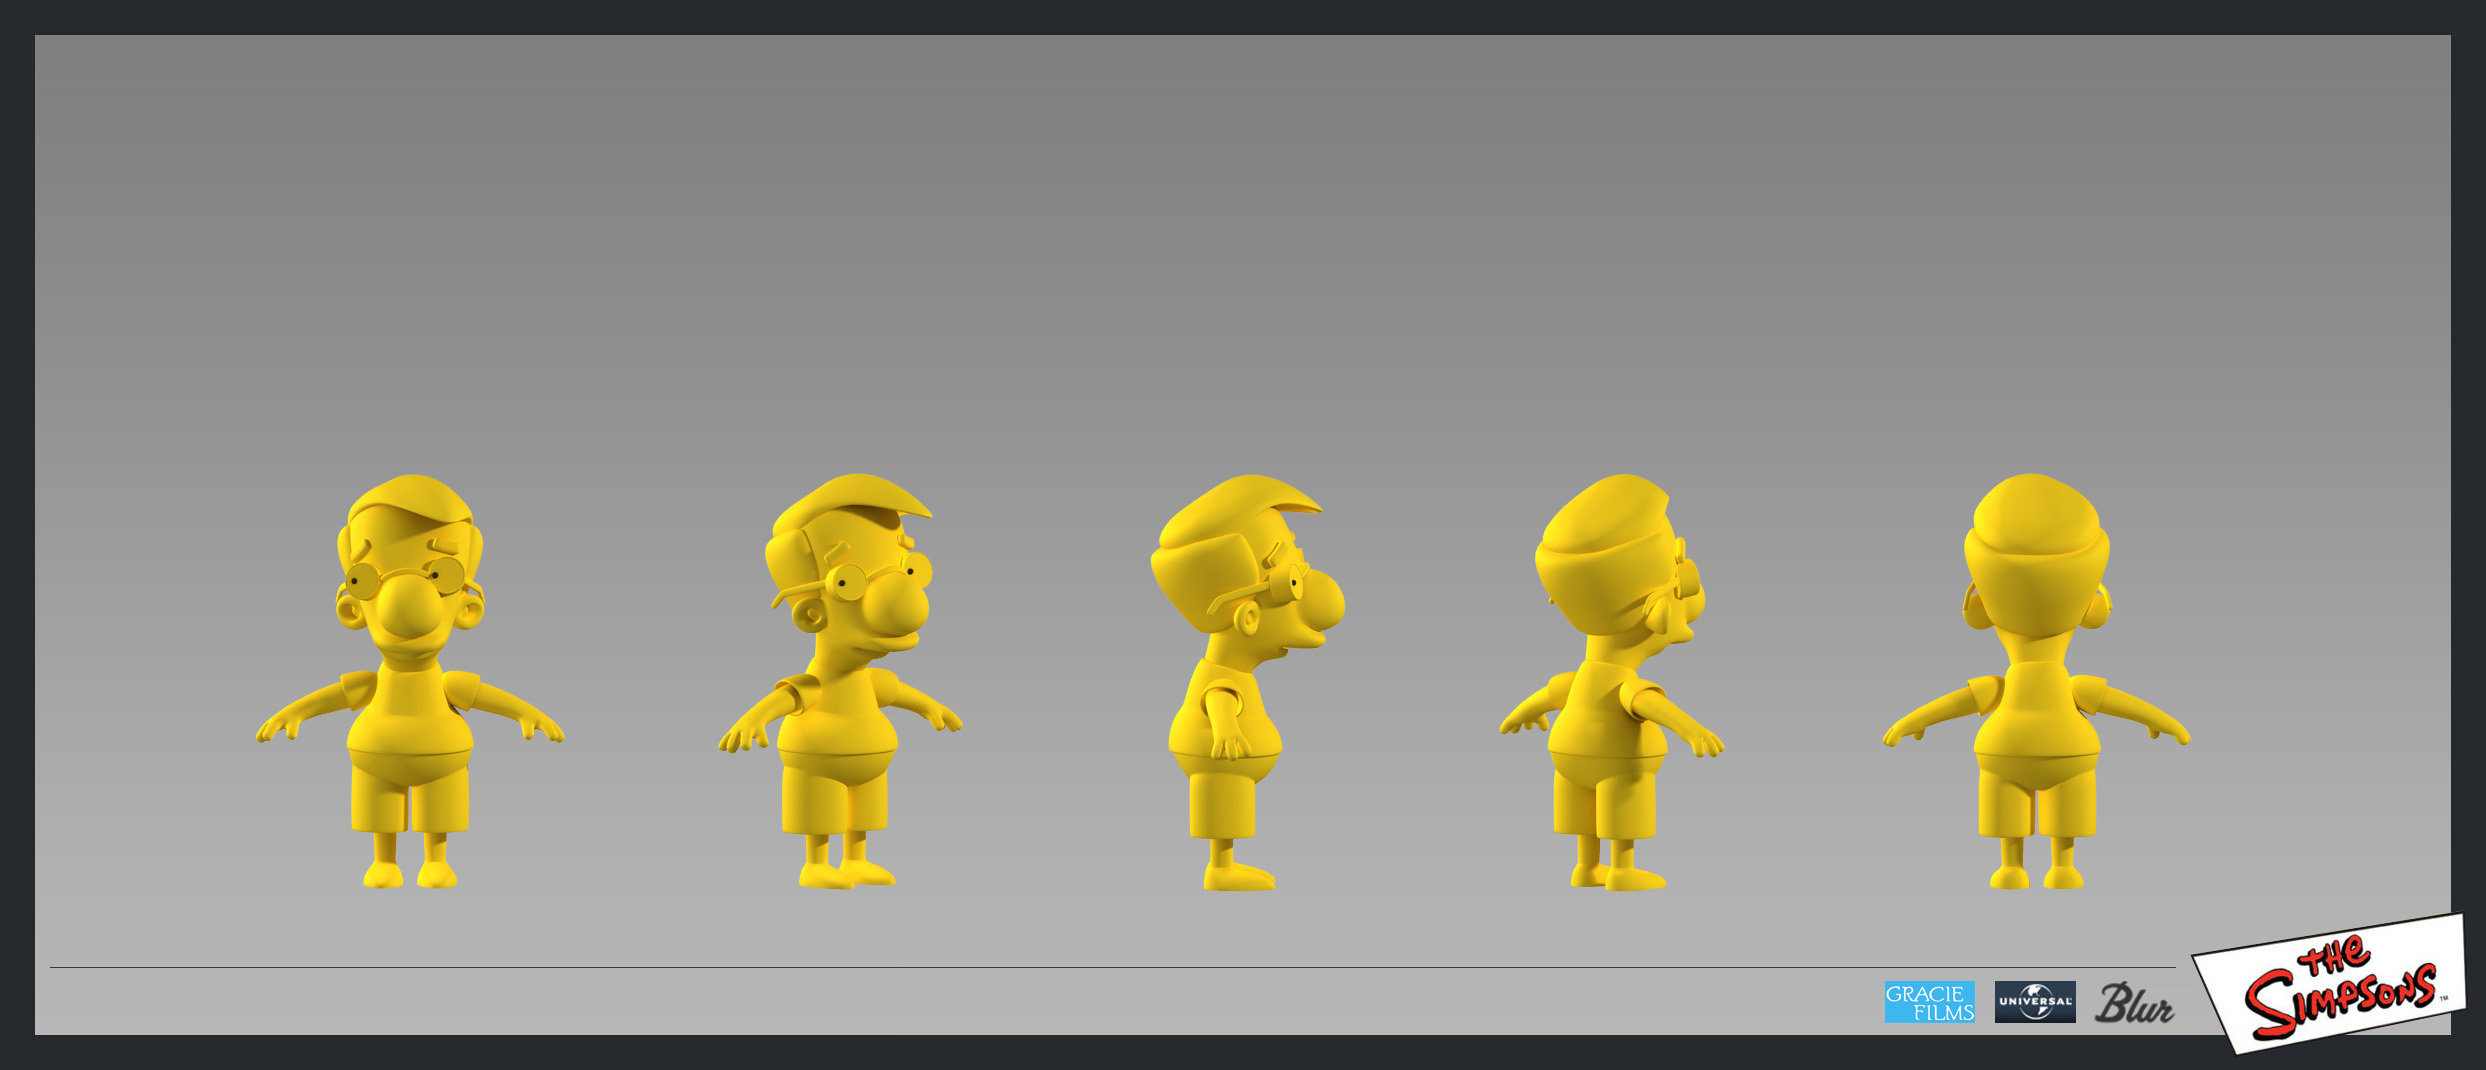 Milhouse_Turnaround_v01_00